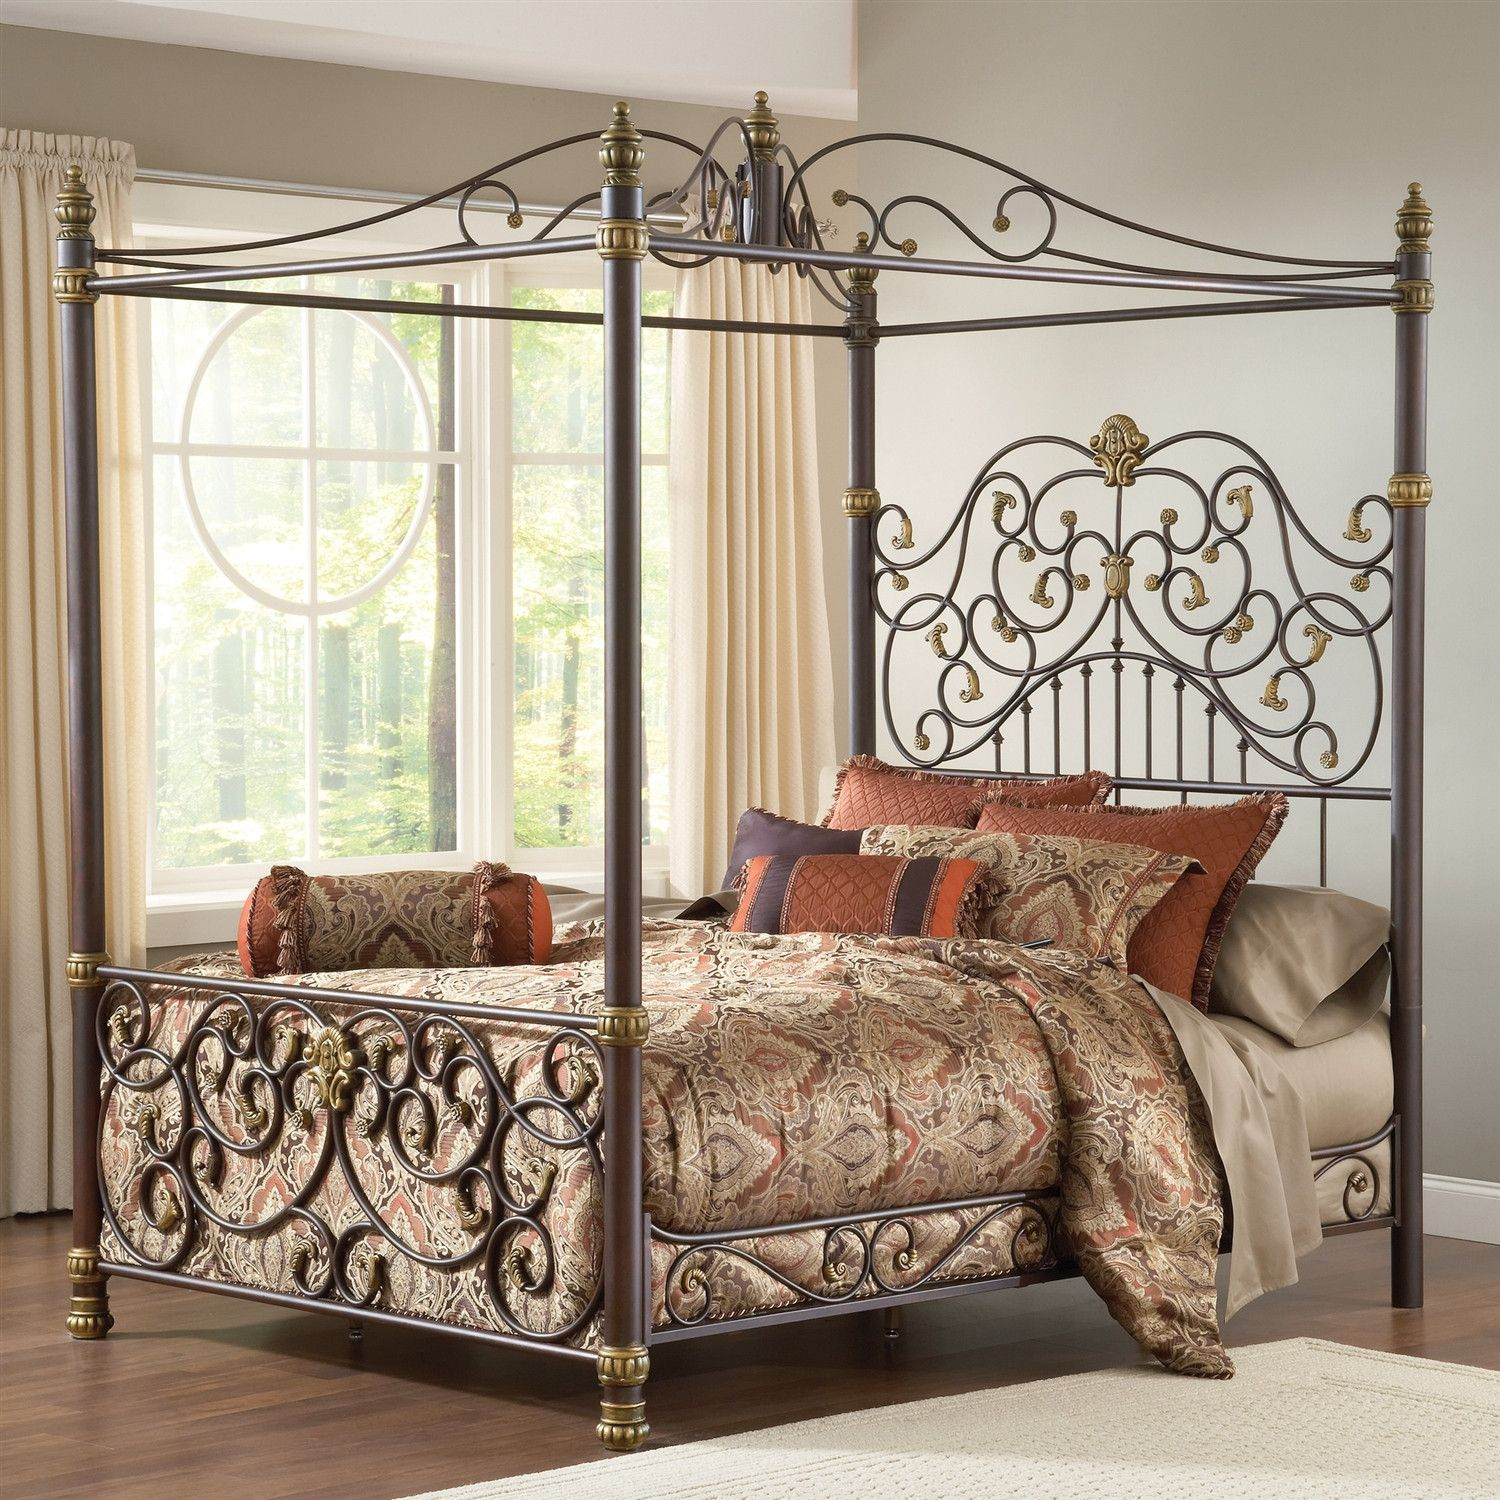 1000+ Queen Size Canopy Bedroom Sets Newest